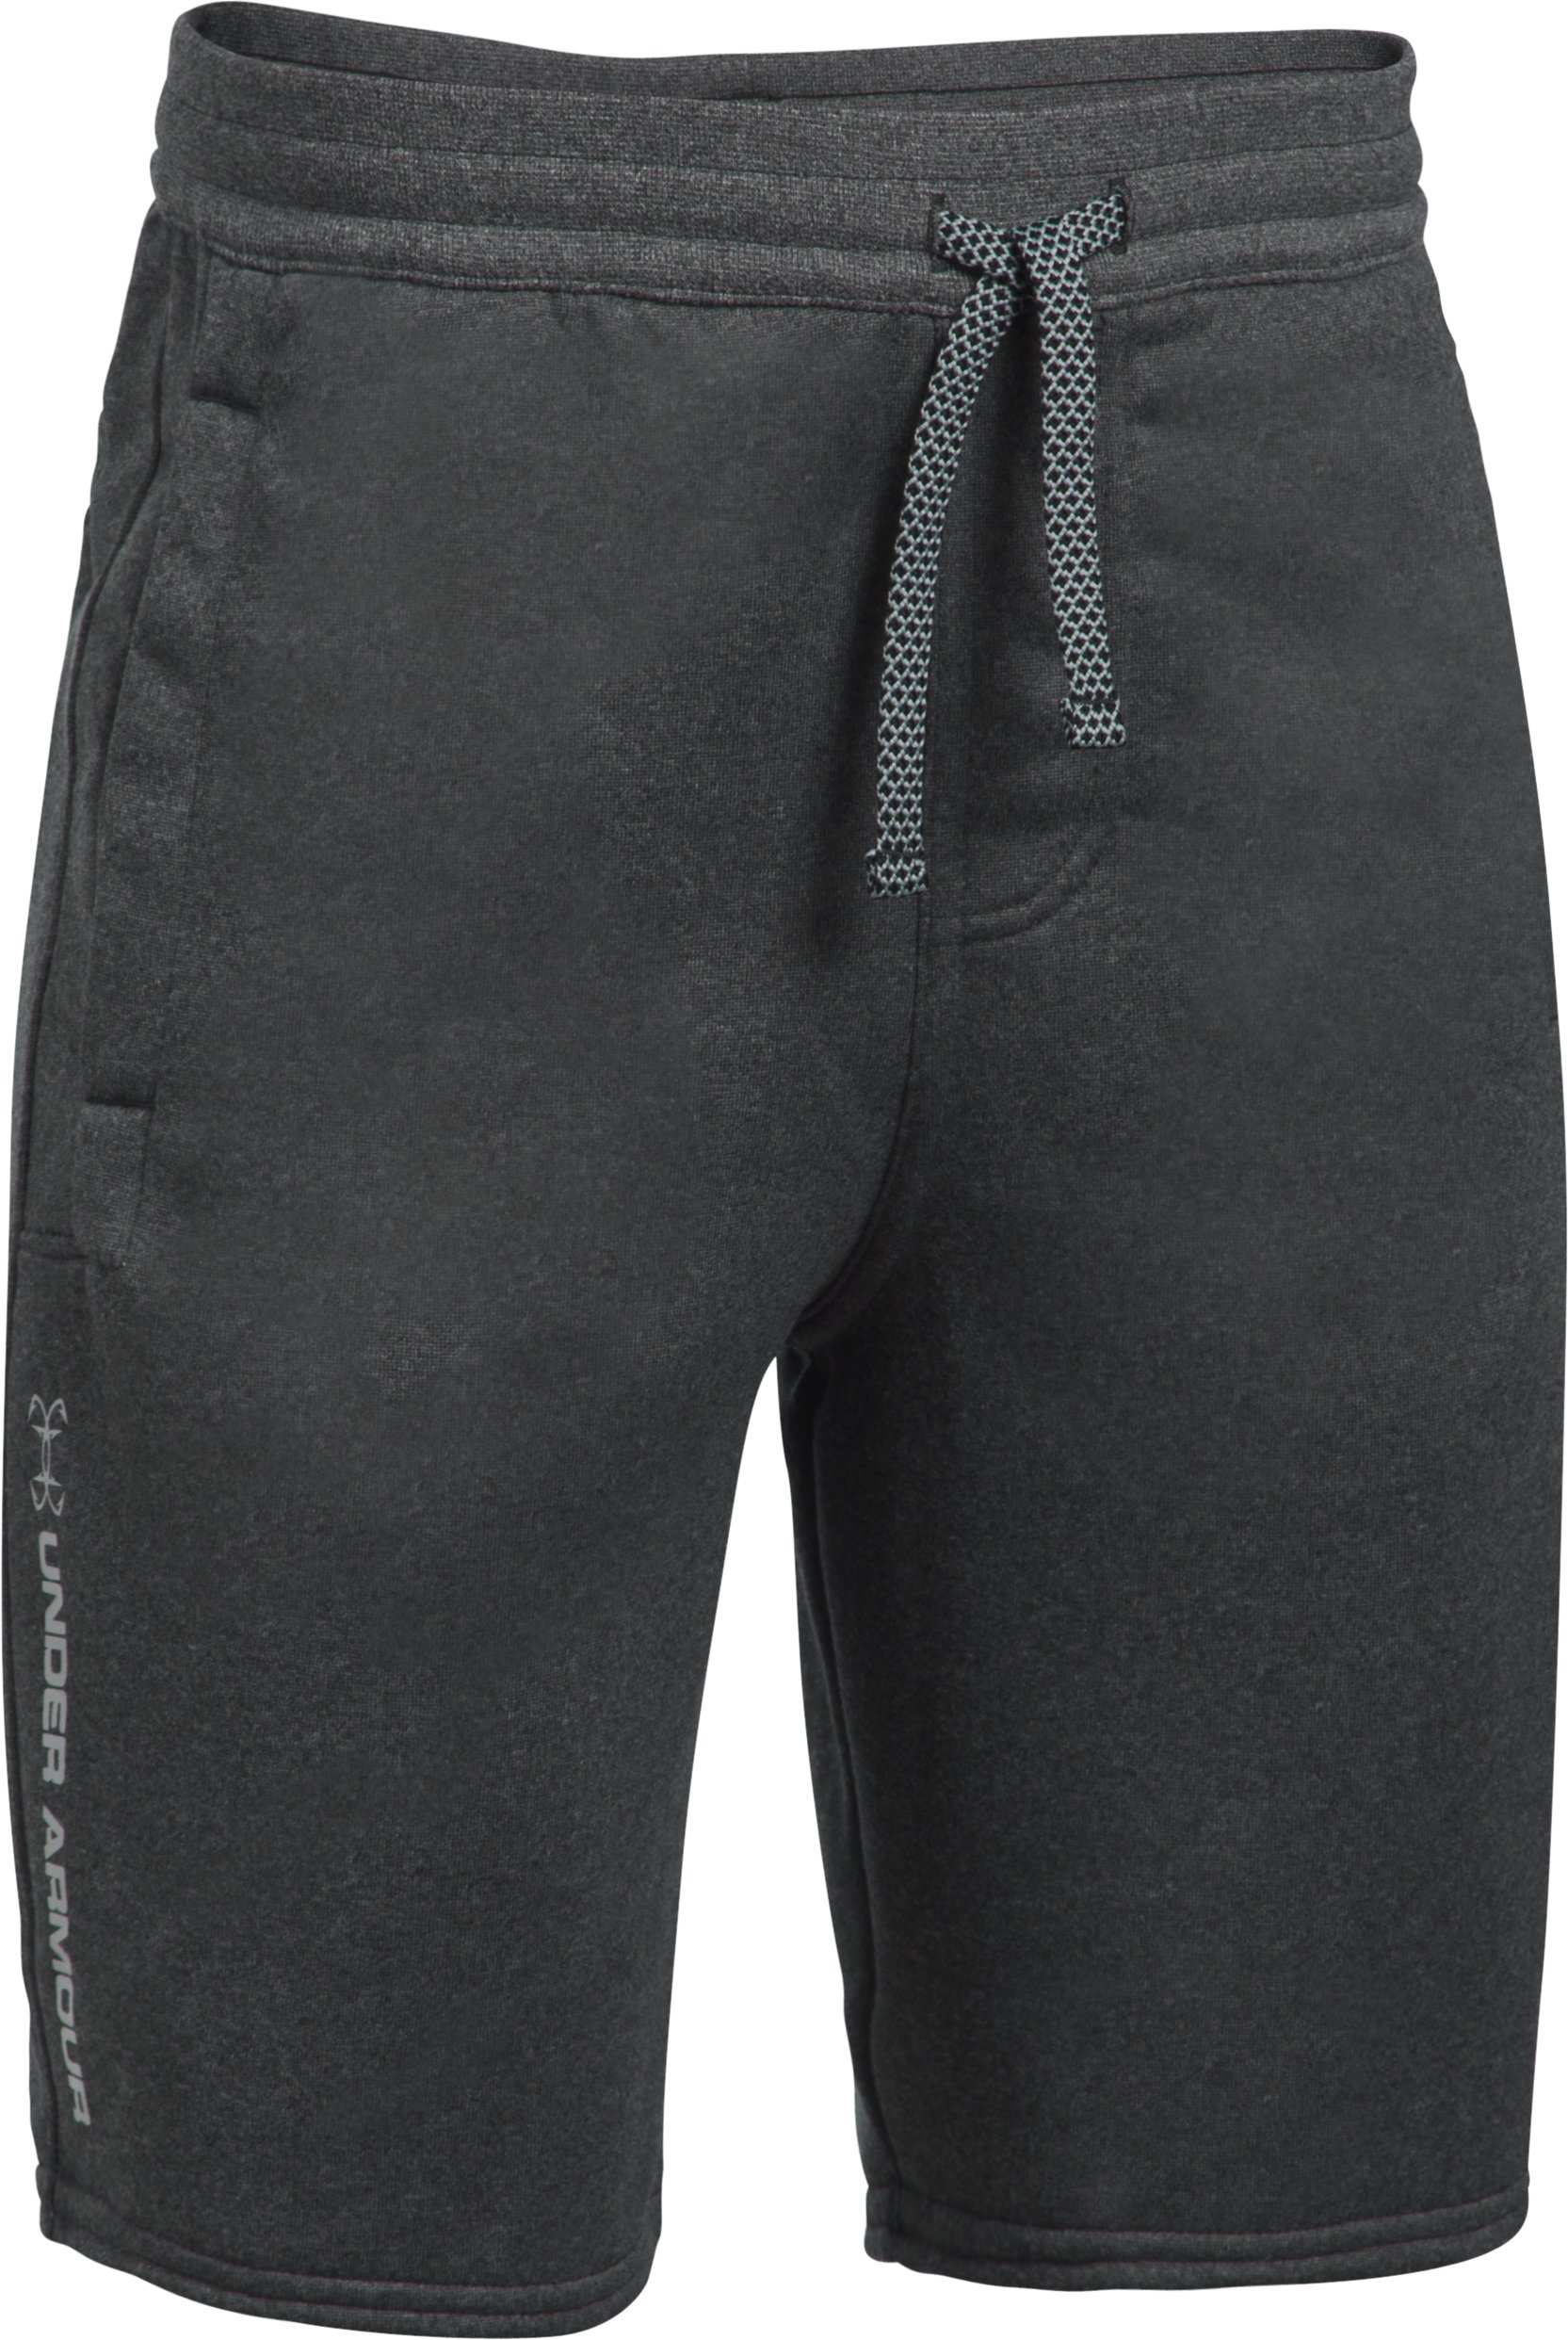 Boys' UA Shoreline Terry Shorts, Asphalt Heather, zoomed image